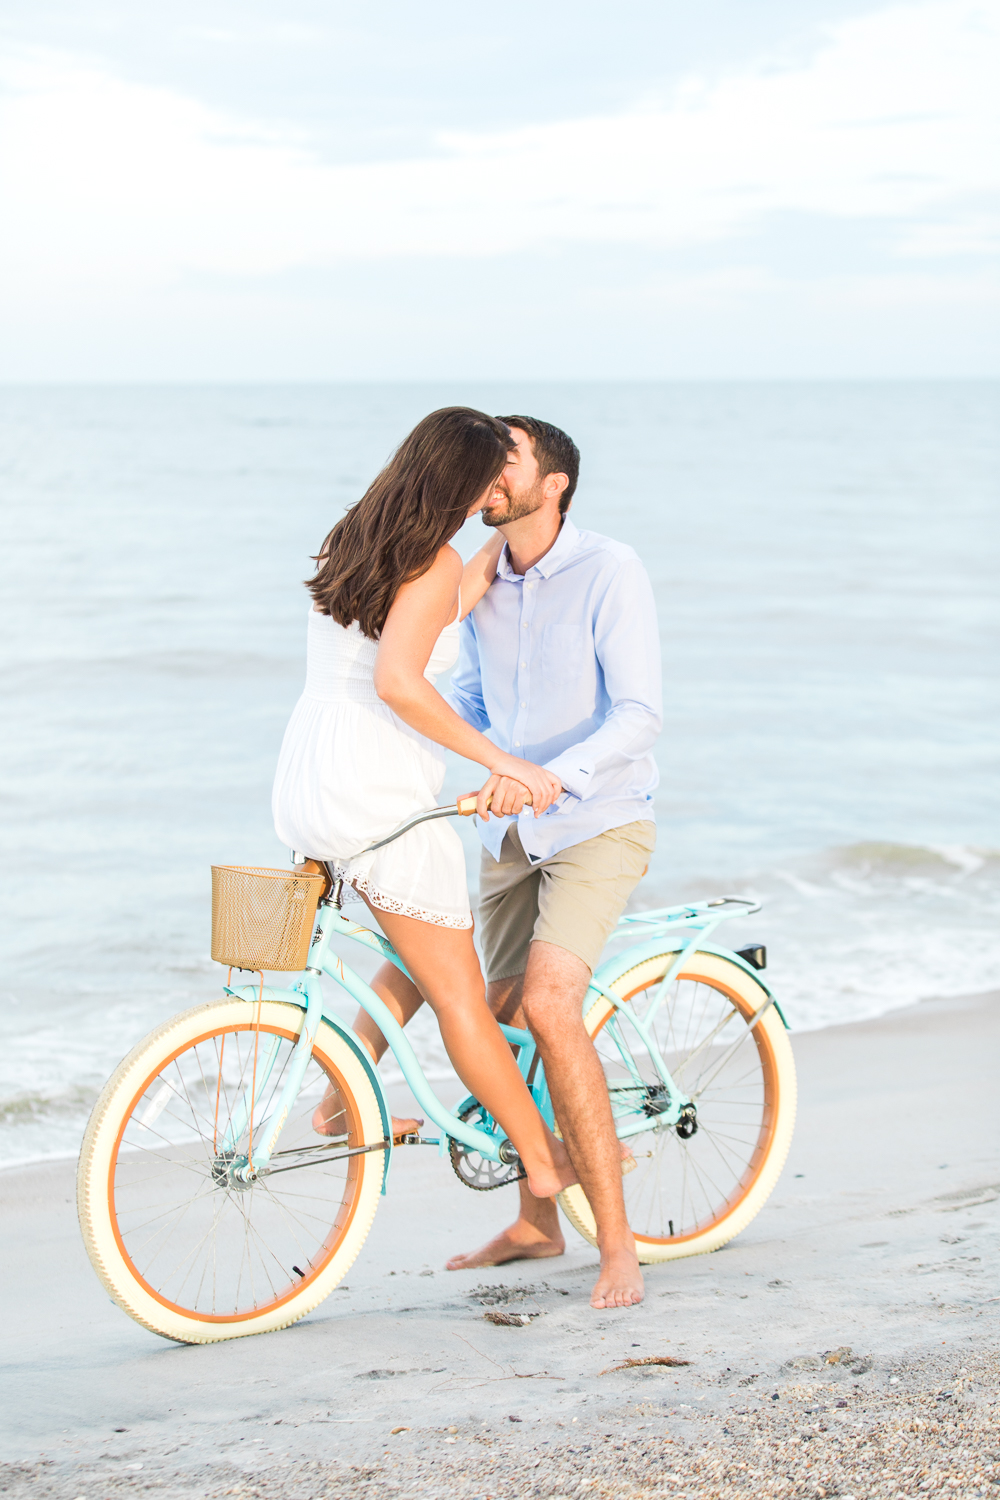 engaged couple kissing on a beach cruiser bike at the beach during sunset